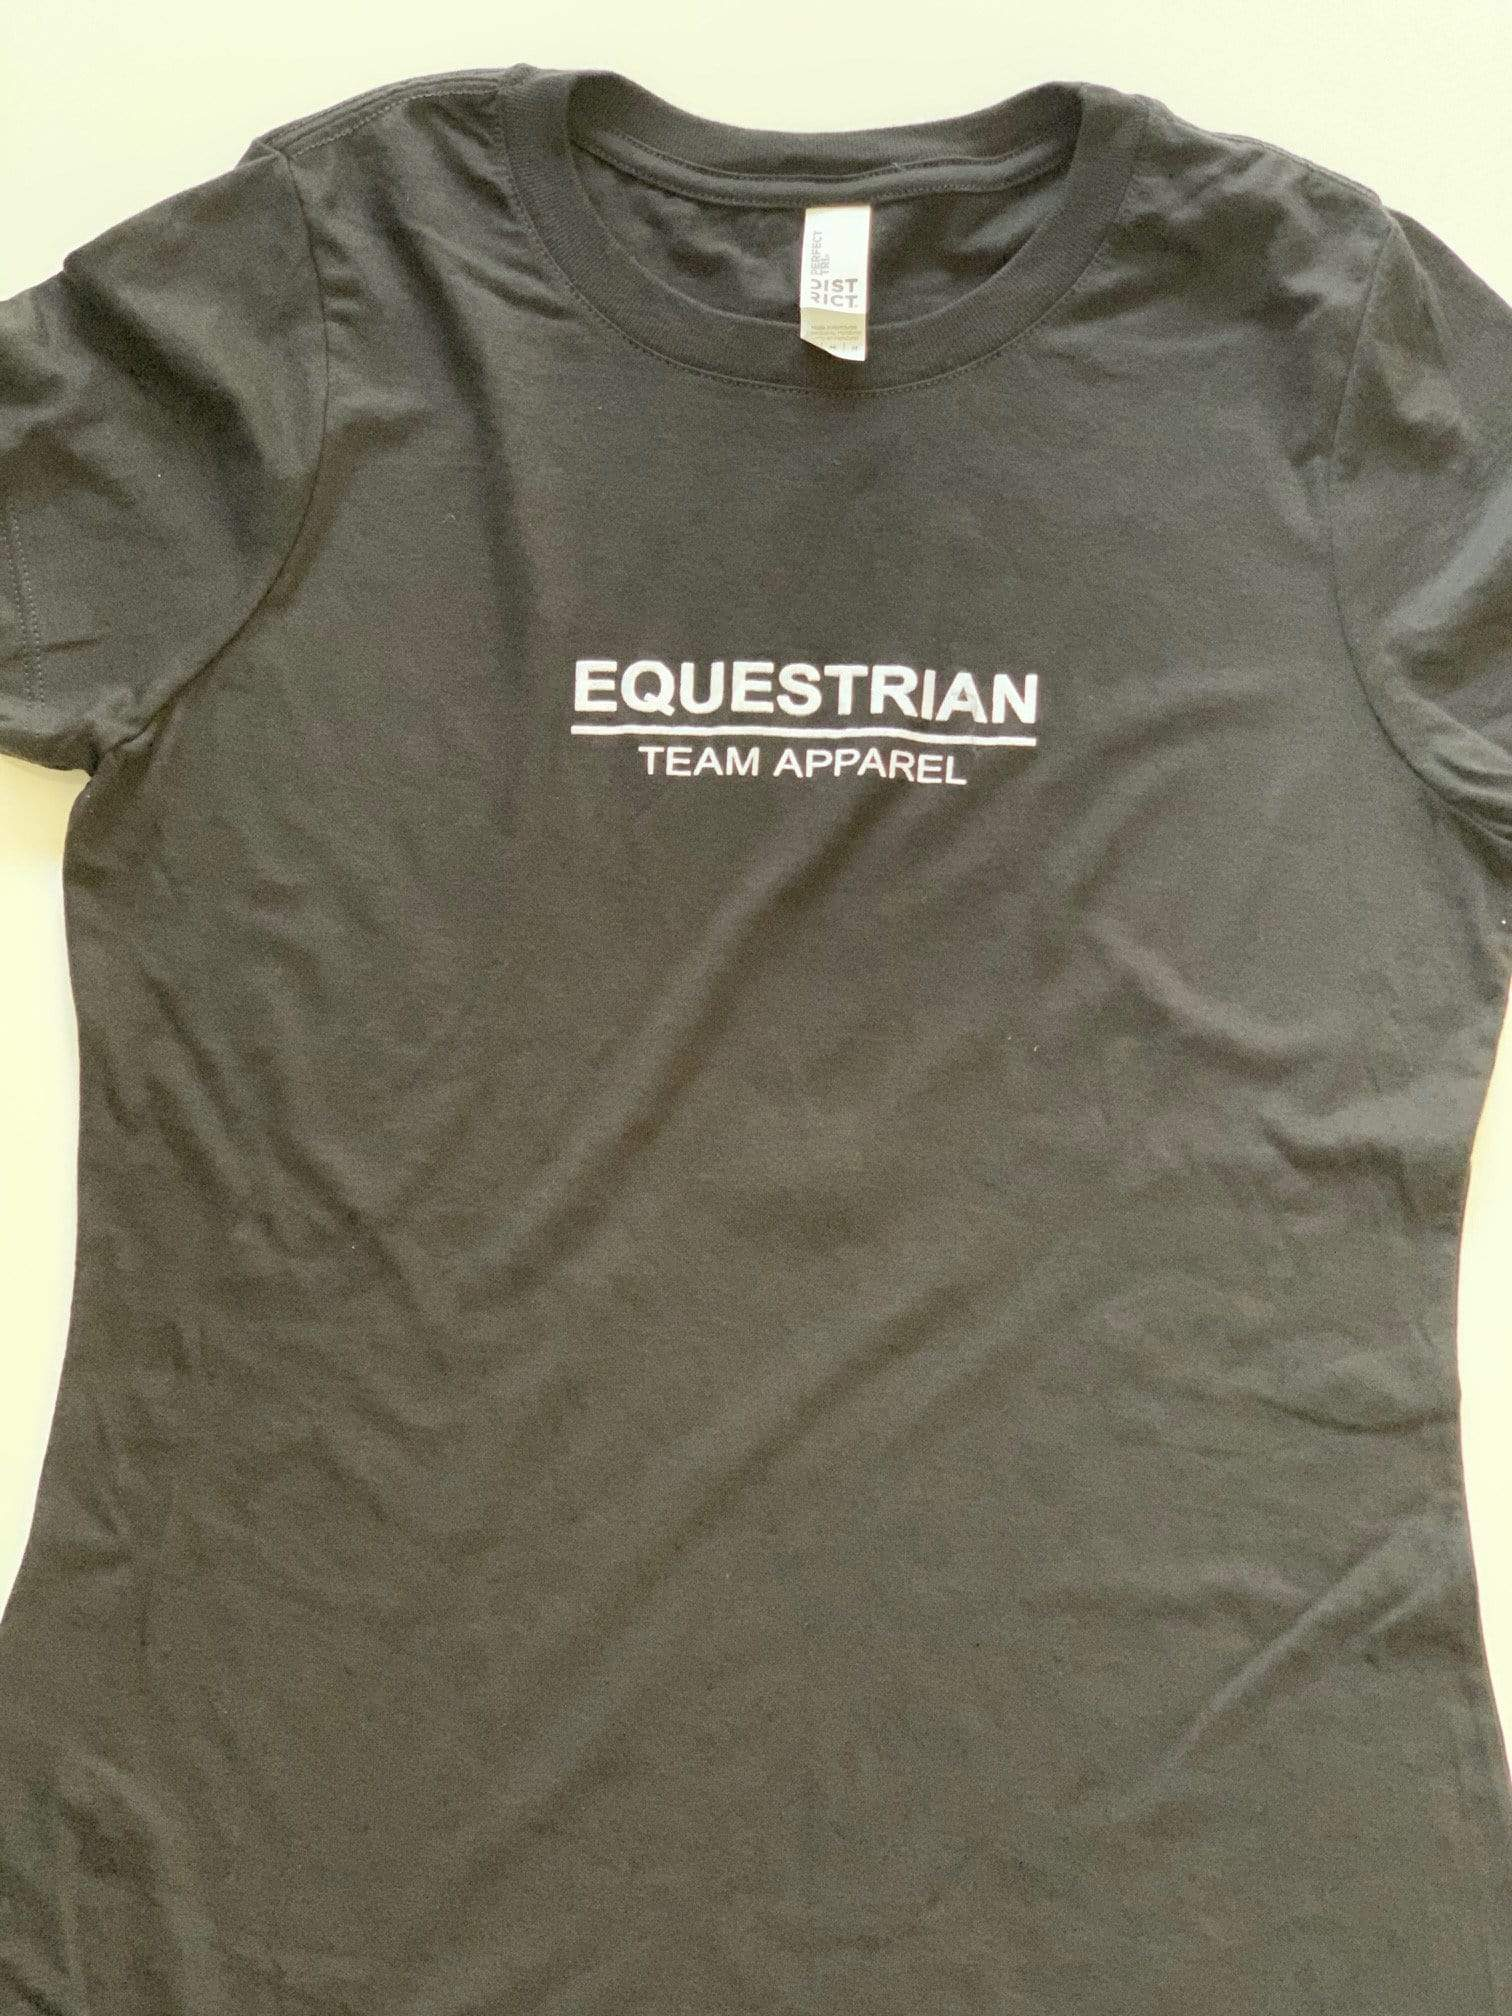 Equestrian Team Apparel Graphic Tees Women's Tryon Graphic Tee - ETA equestrian team apparel online tack store mobile tack store custom farm apparel custom show stable clothing equestrian lifestyle horse show clothing riding clothes horses equestrian tack store